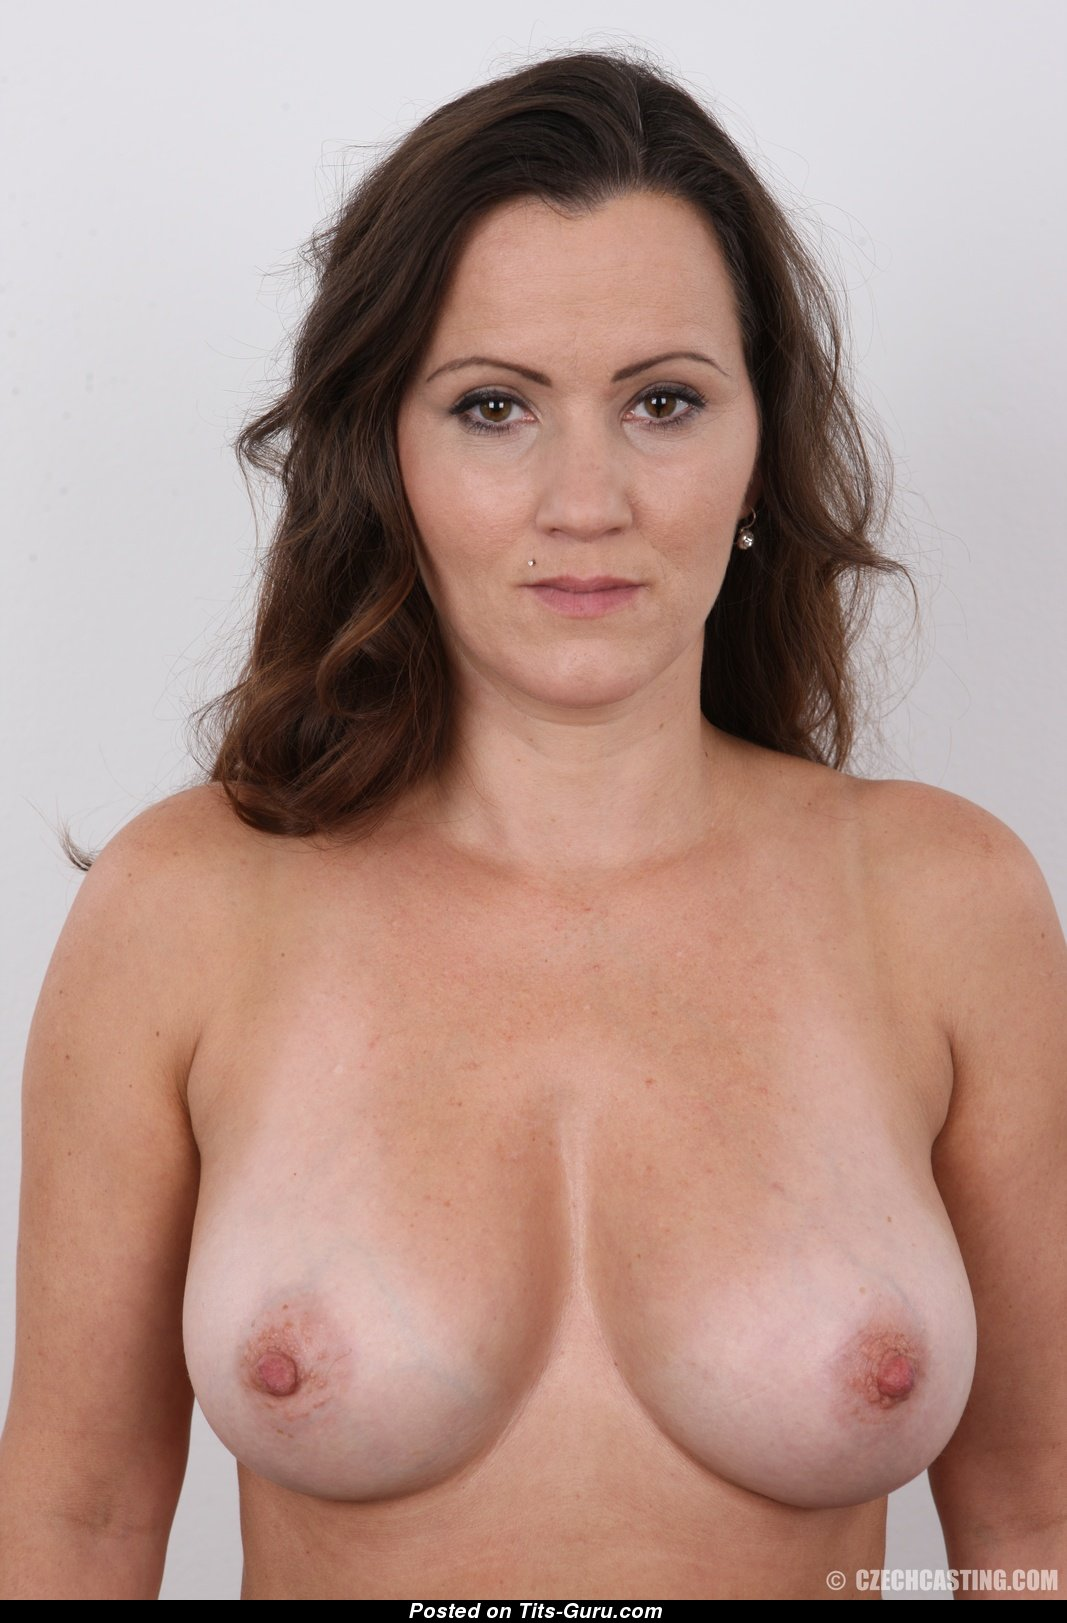 Eva Czech Casting No9802 - Topless Brunette With Nude -8944